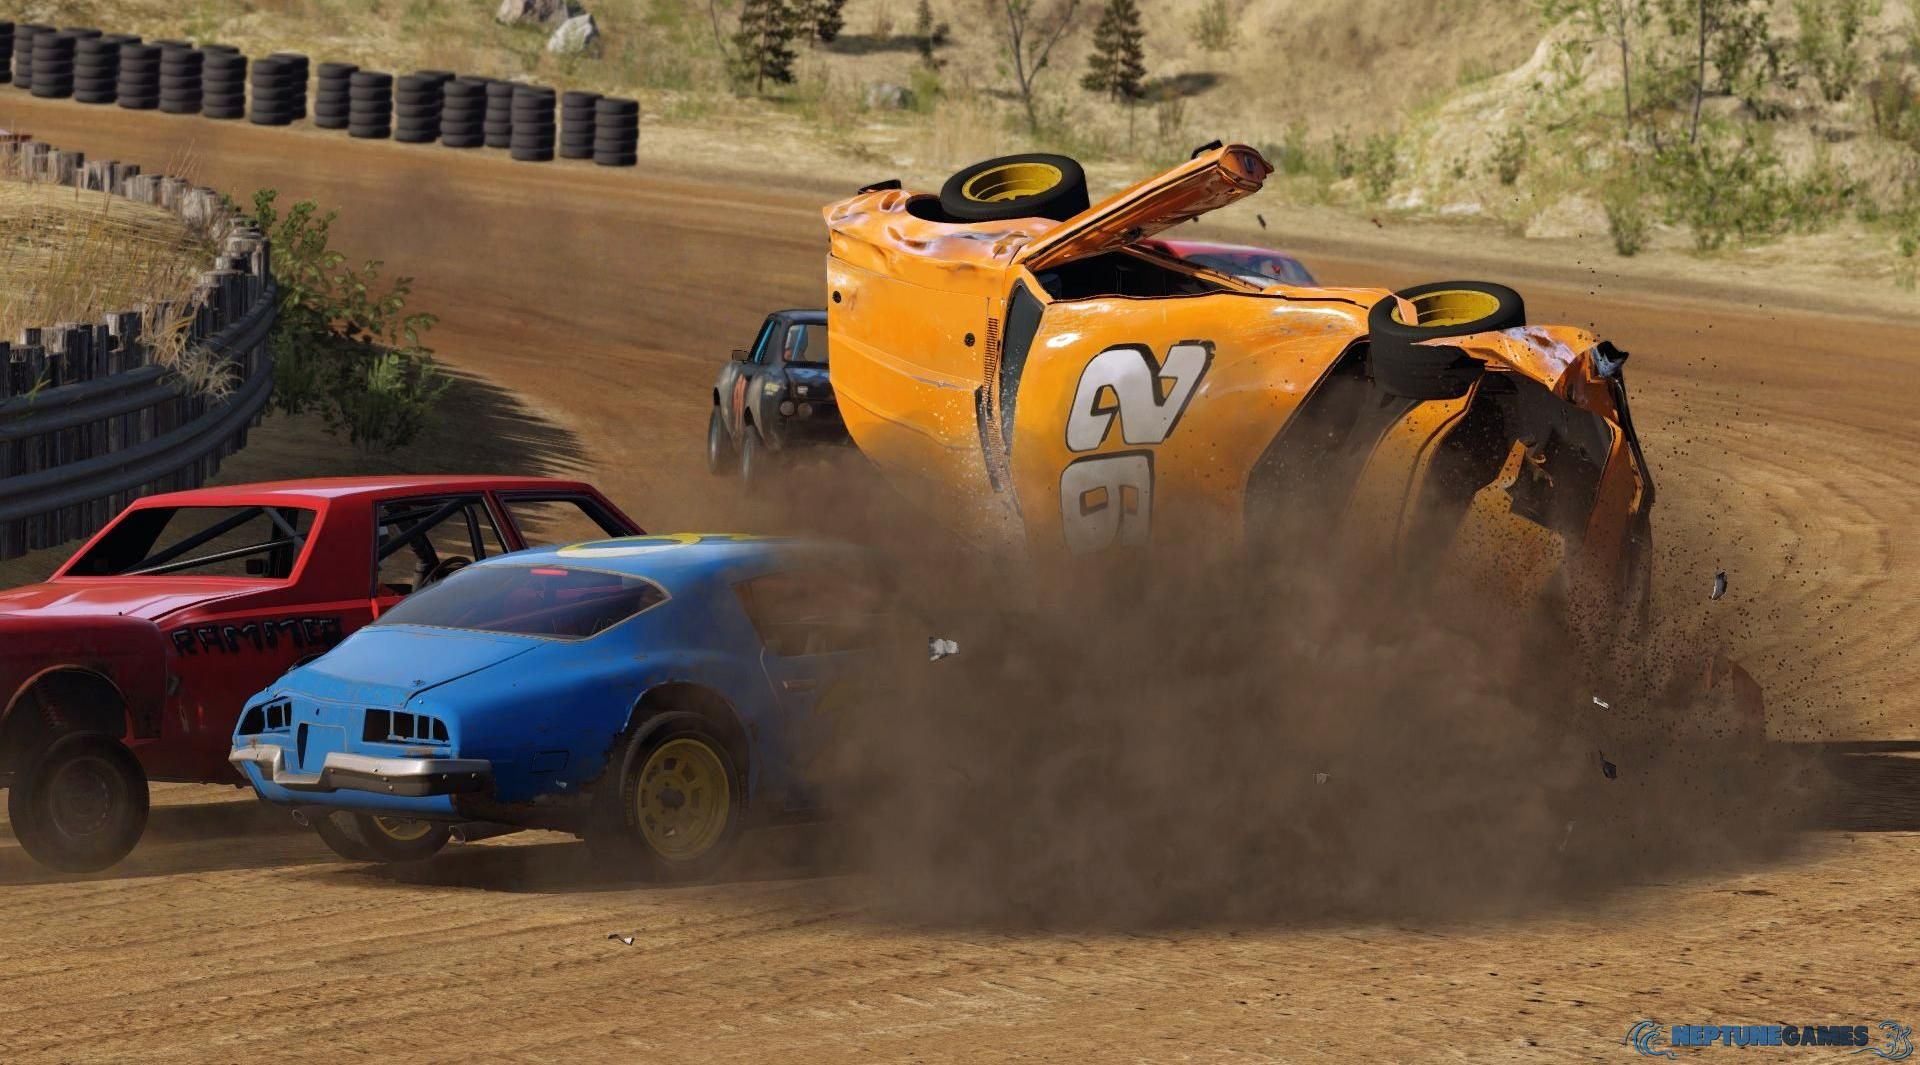 Next Car Game Wreckfest for PC, PS4 and Xbox One Gets New